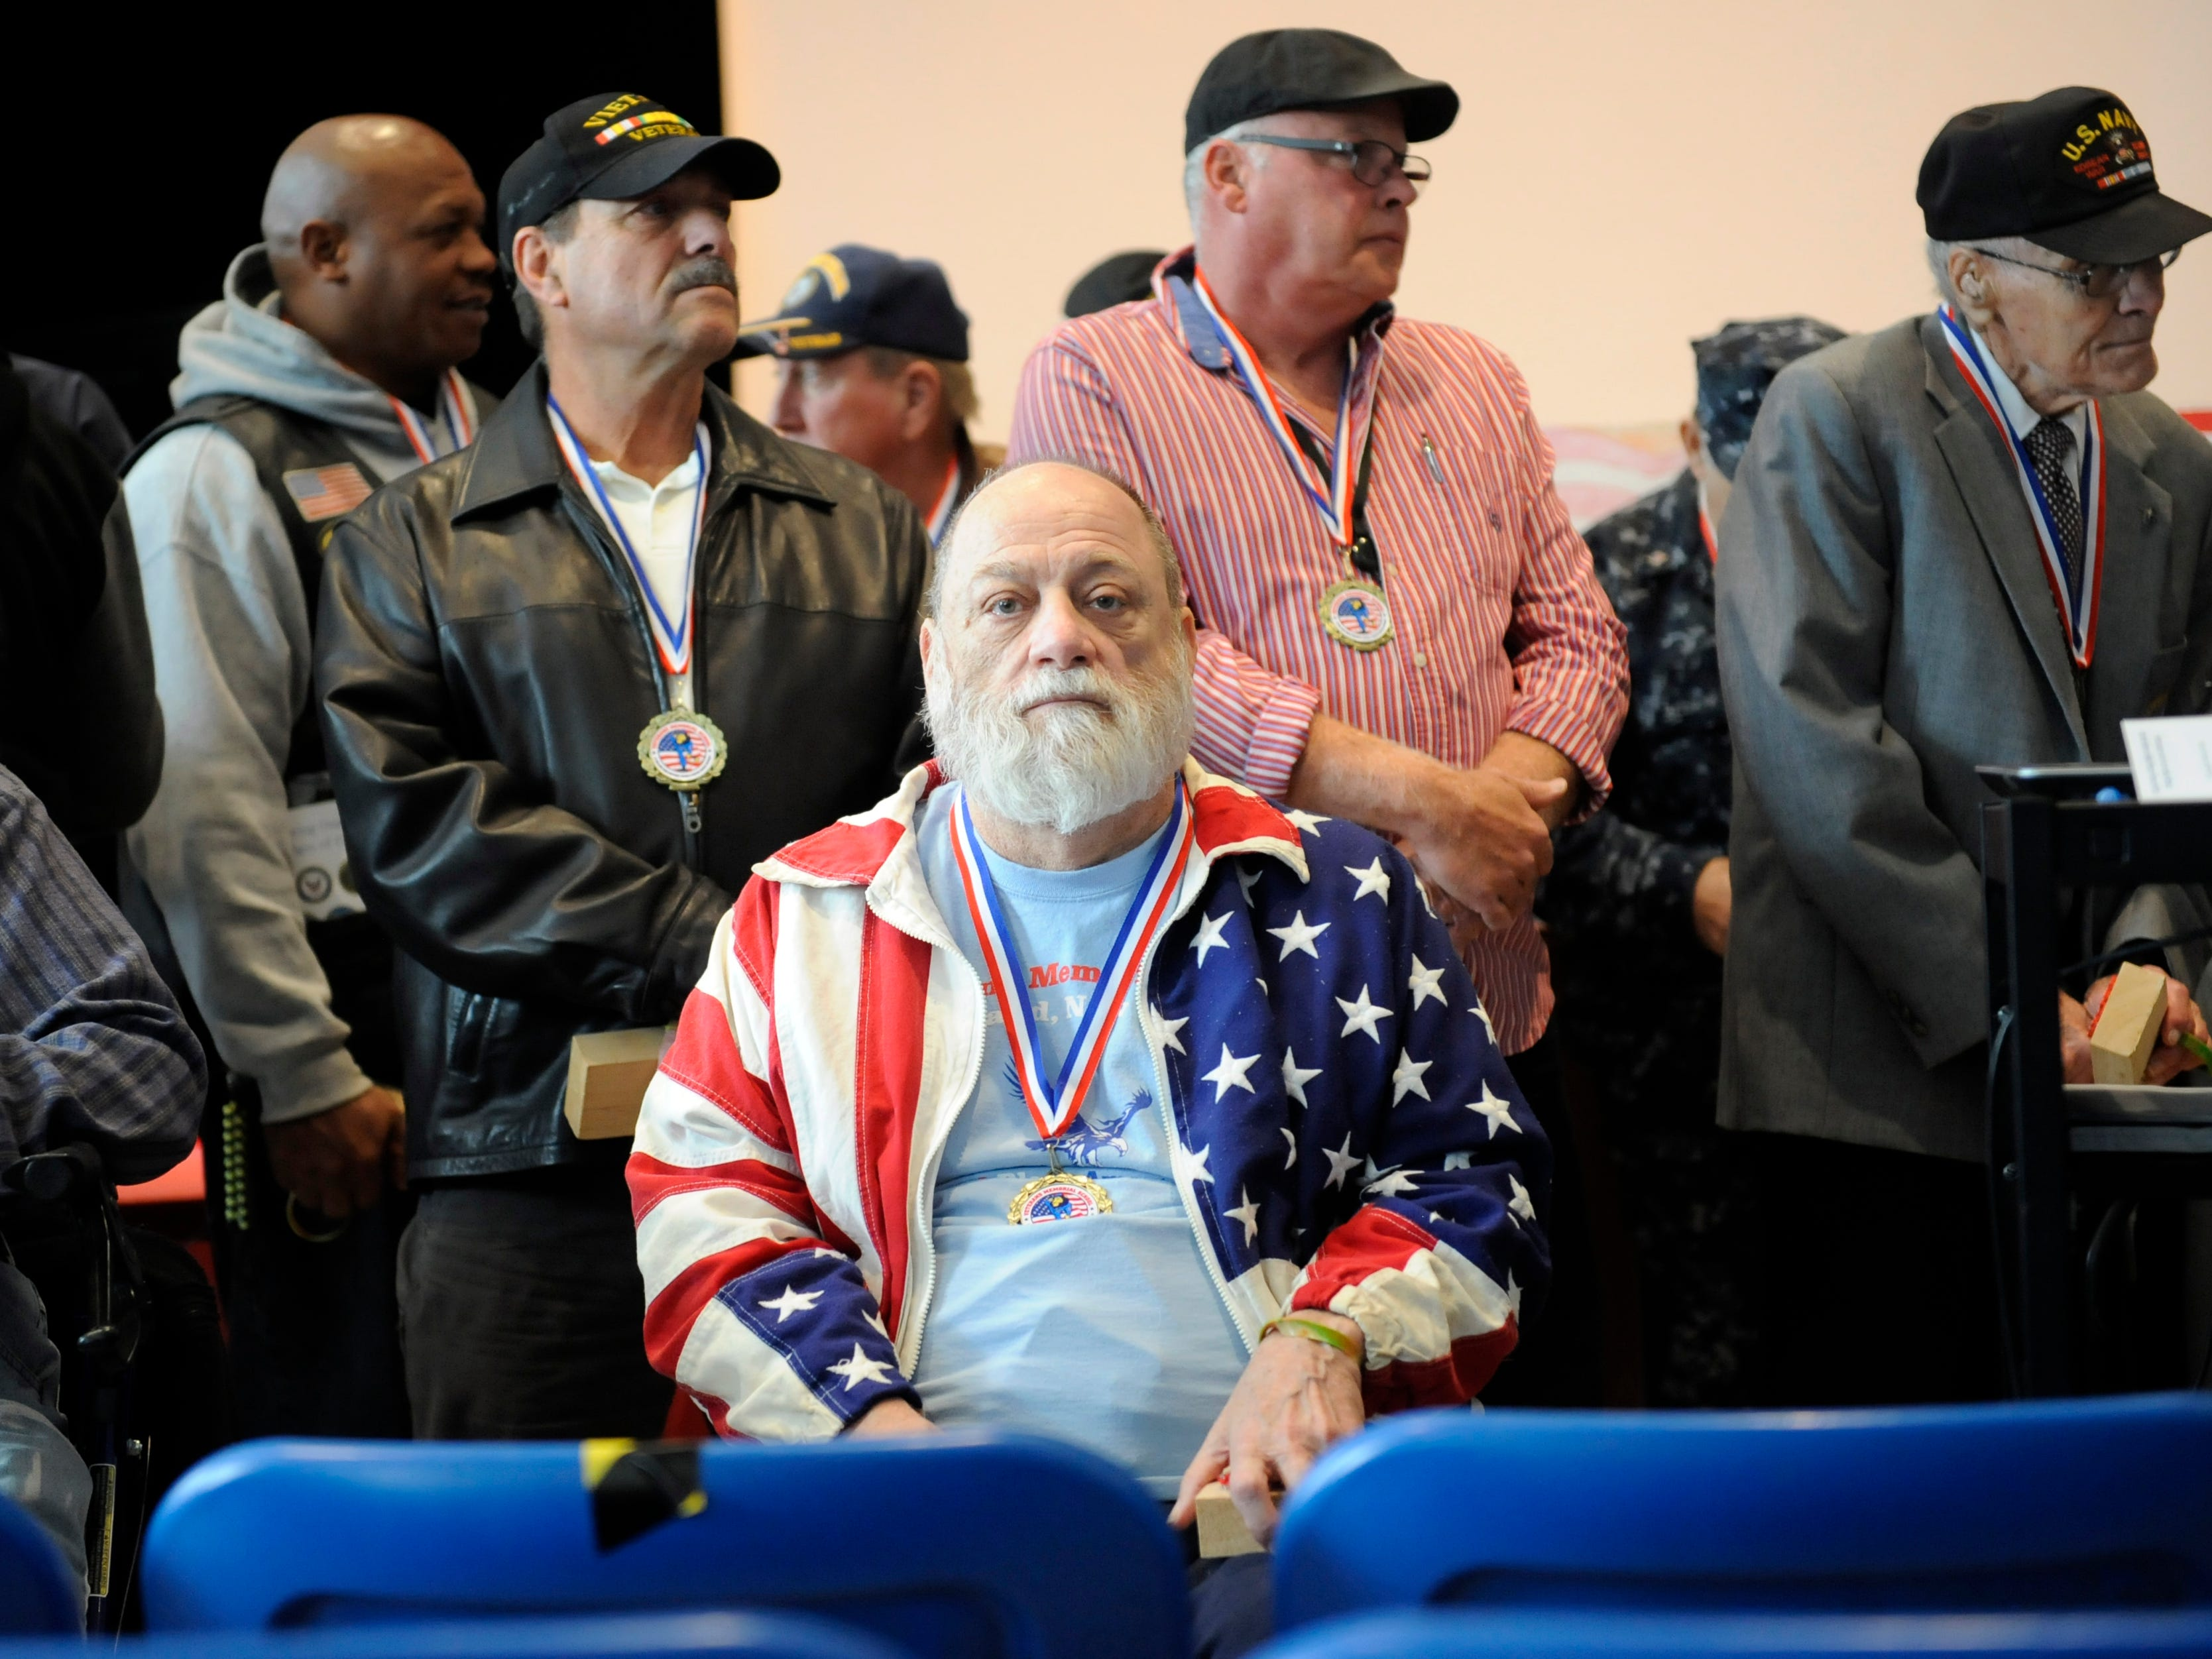 Vietnam Veteran Gregory R. Miller, 69 of Vineland, attends a special assembly honoring heroes at Veterans Memorial School on Wednesday, November 14, 2018.